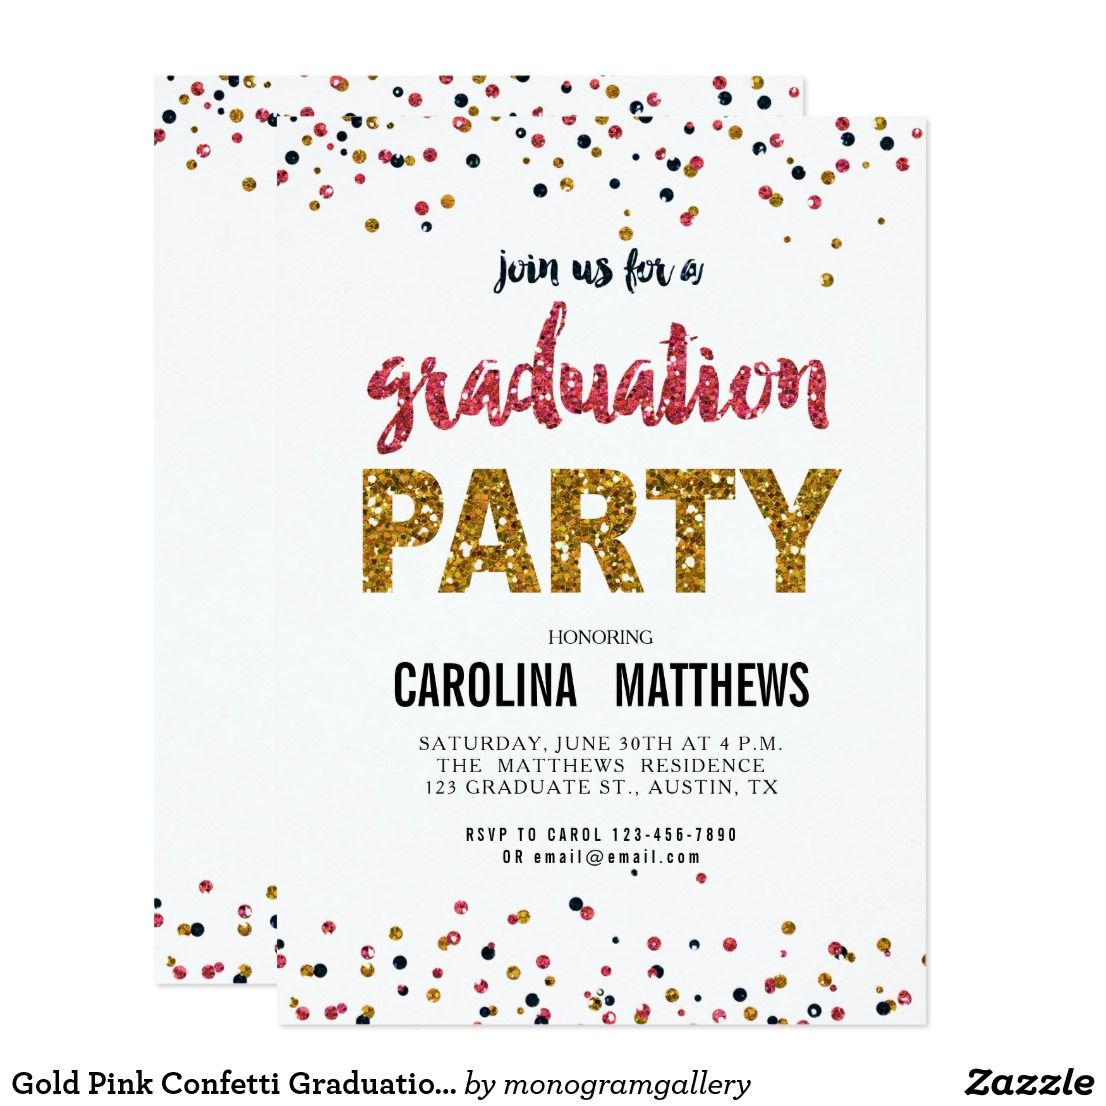 Gold Pink Confetti Graduation Party Invitation Faux Glitter Glamor